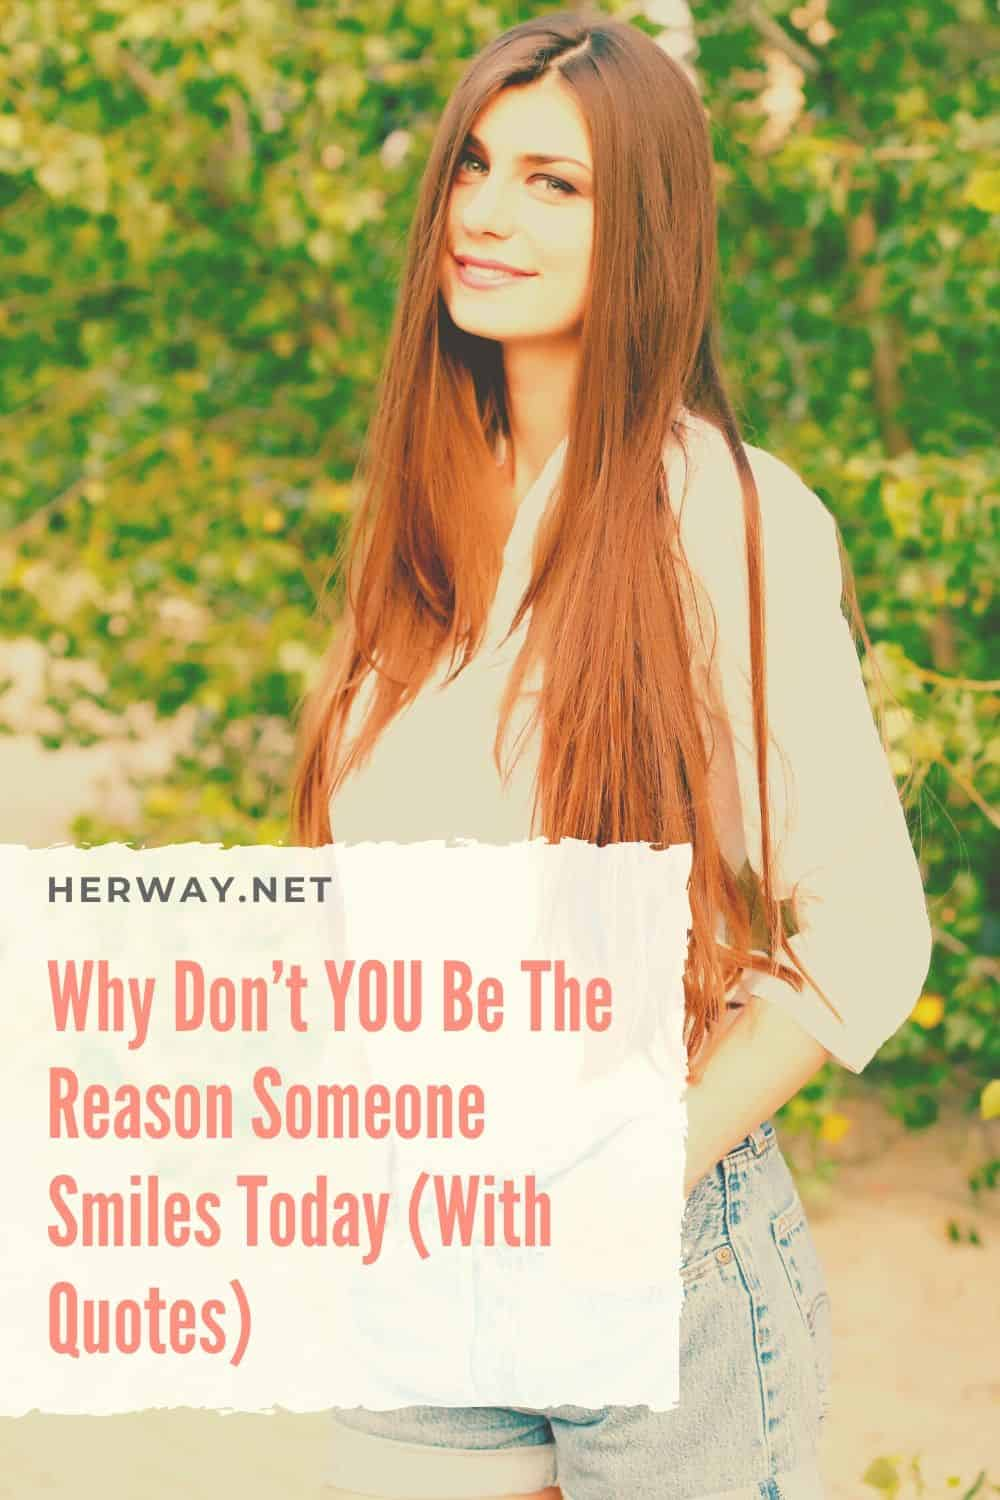 Why Don't YOU Be The Reason Someone Smiles Today (With Quotes)